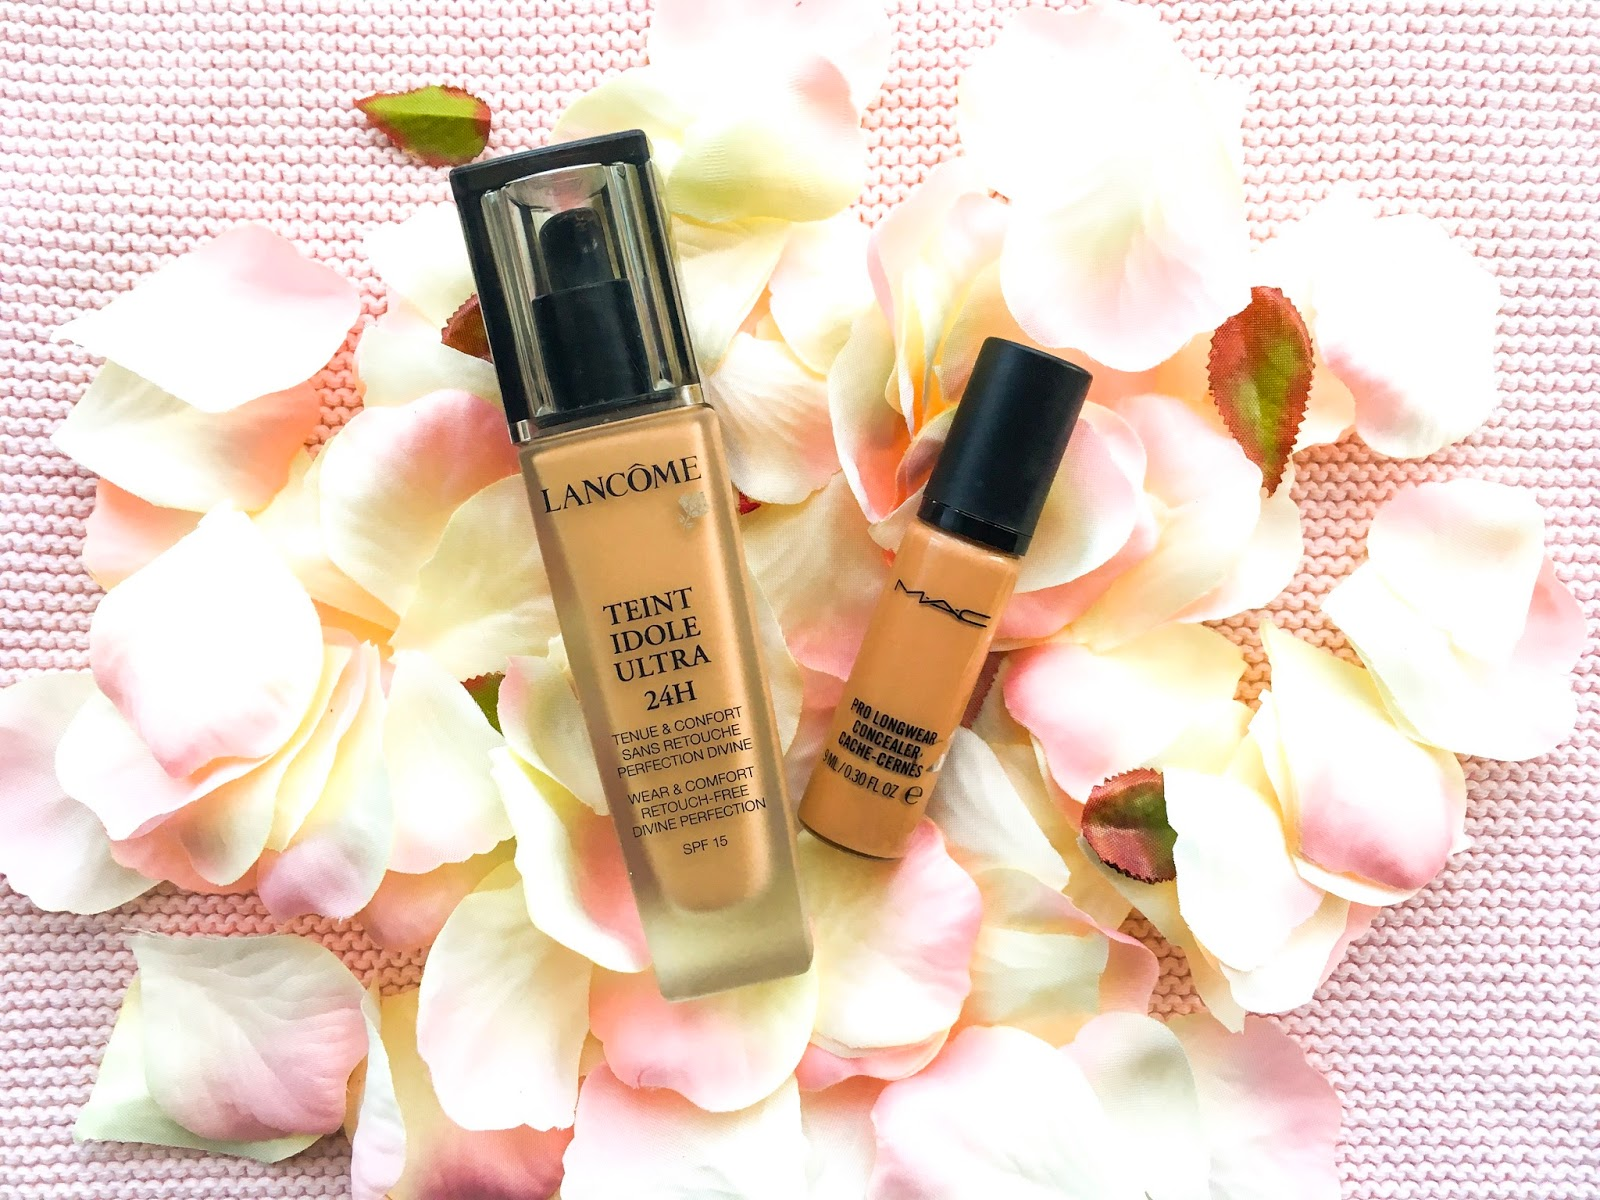 lancome teint idole ultra 24 hr foundation review, lancome teint idole foundation review, best long lasting foundation, mac pro longwear concealer review, mac pro longwear concealer, best long wearing concealer